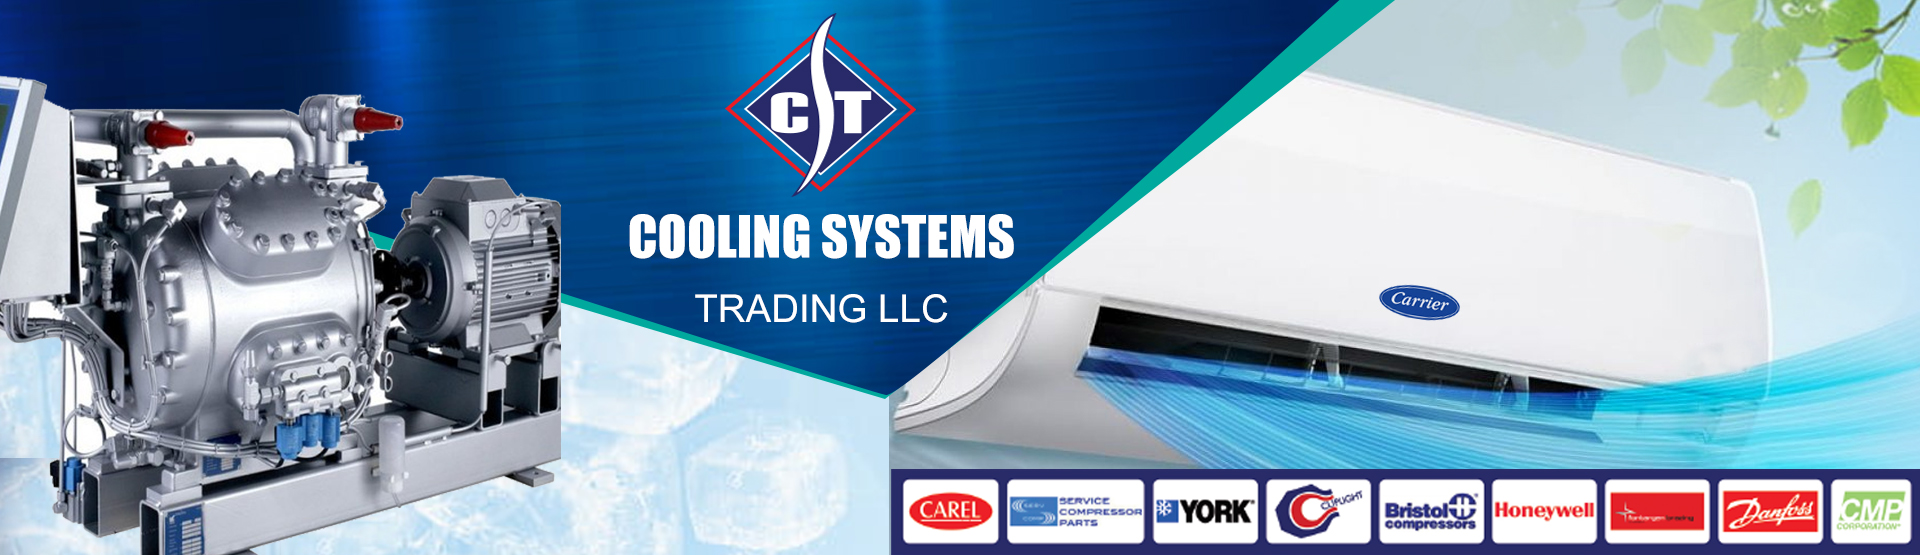 COOLING SYSTEMS TRADING LLC